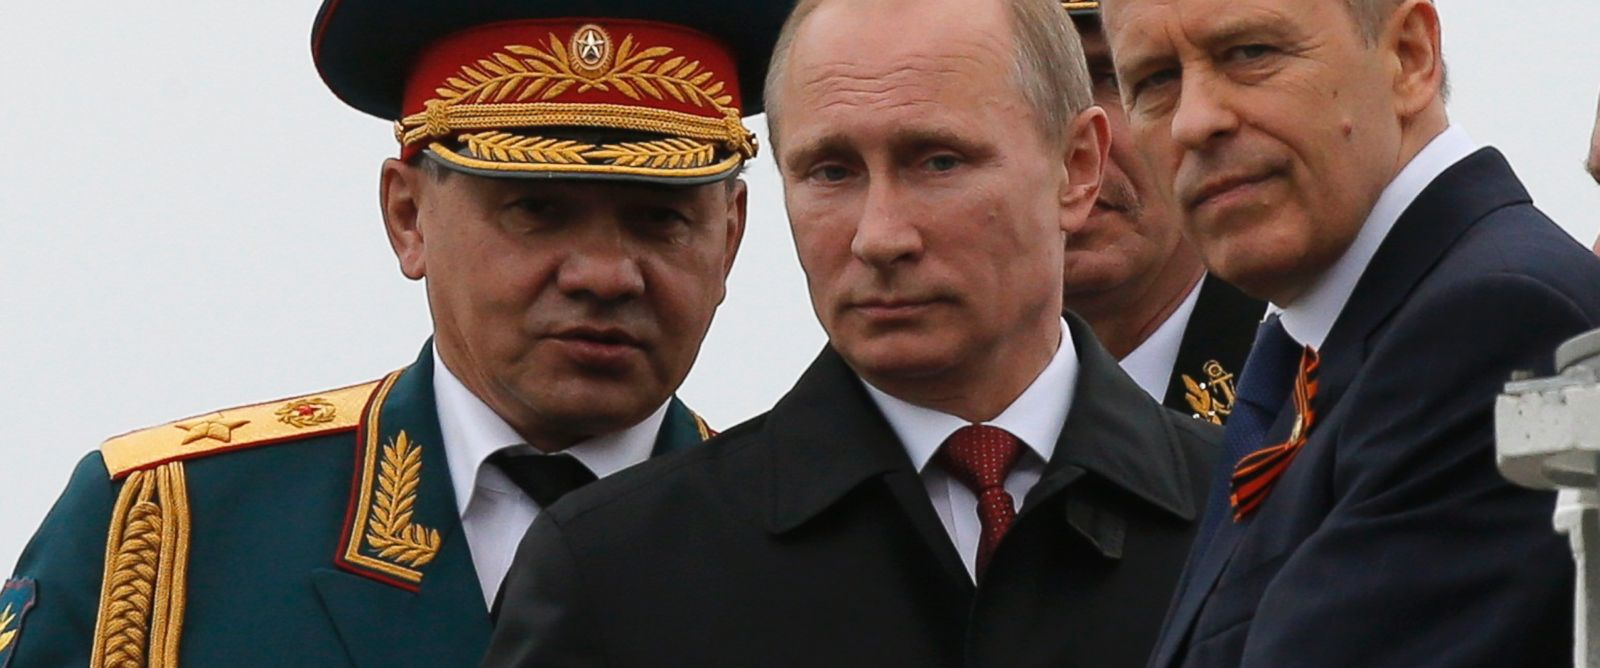 PHOTO: Russian President Vladimir Putin, center, Defence Minister Sergei Shoigu, left, and Russias Federal Security Service Director Alexander Bortnikov watch events to mark Victory Day in Sevastopol May 9, 2014.